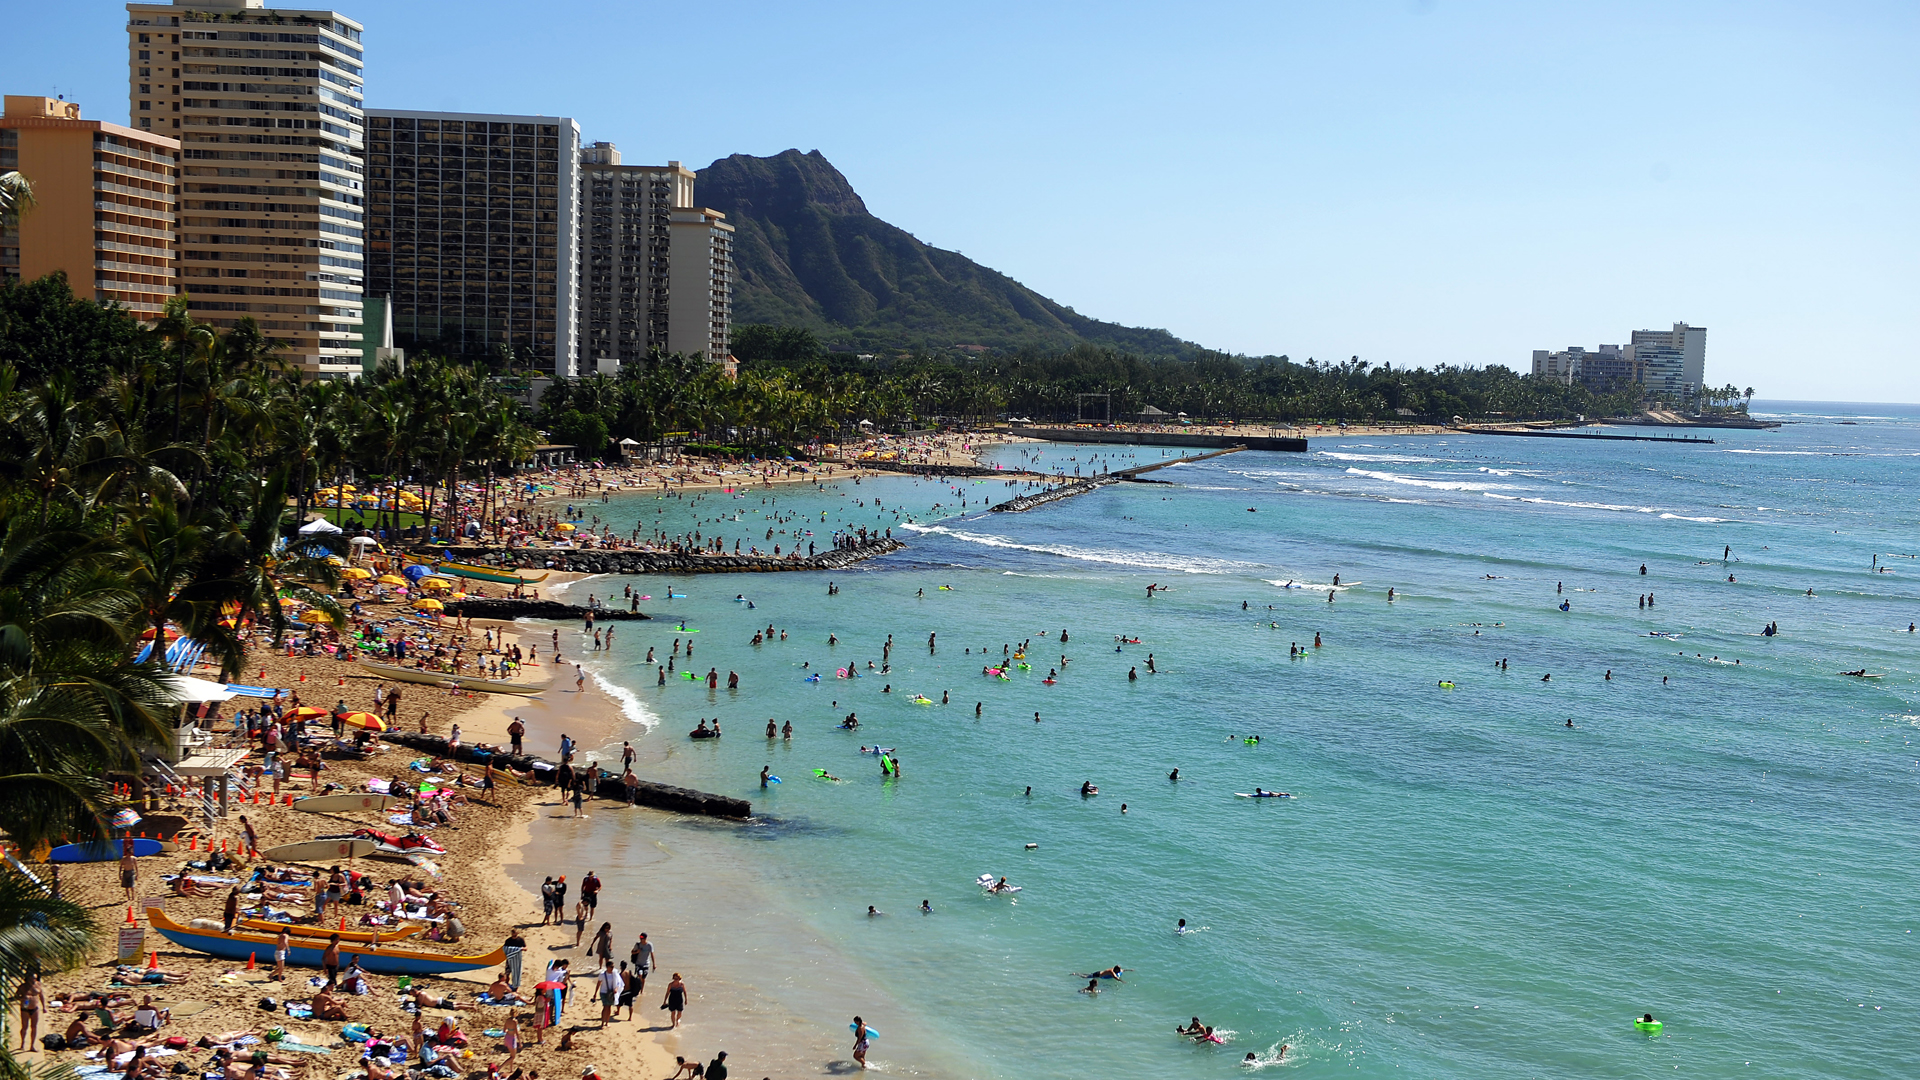 Tourists enjoy sunbathing, surfing, boating and swimming at Waikiki beach in Honolulu, Hawaii, on Jan. 1, 2010. (JEWEL SAMAD/AFP via Getty Images)